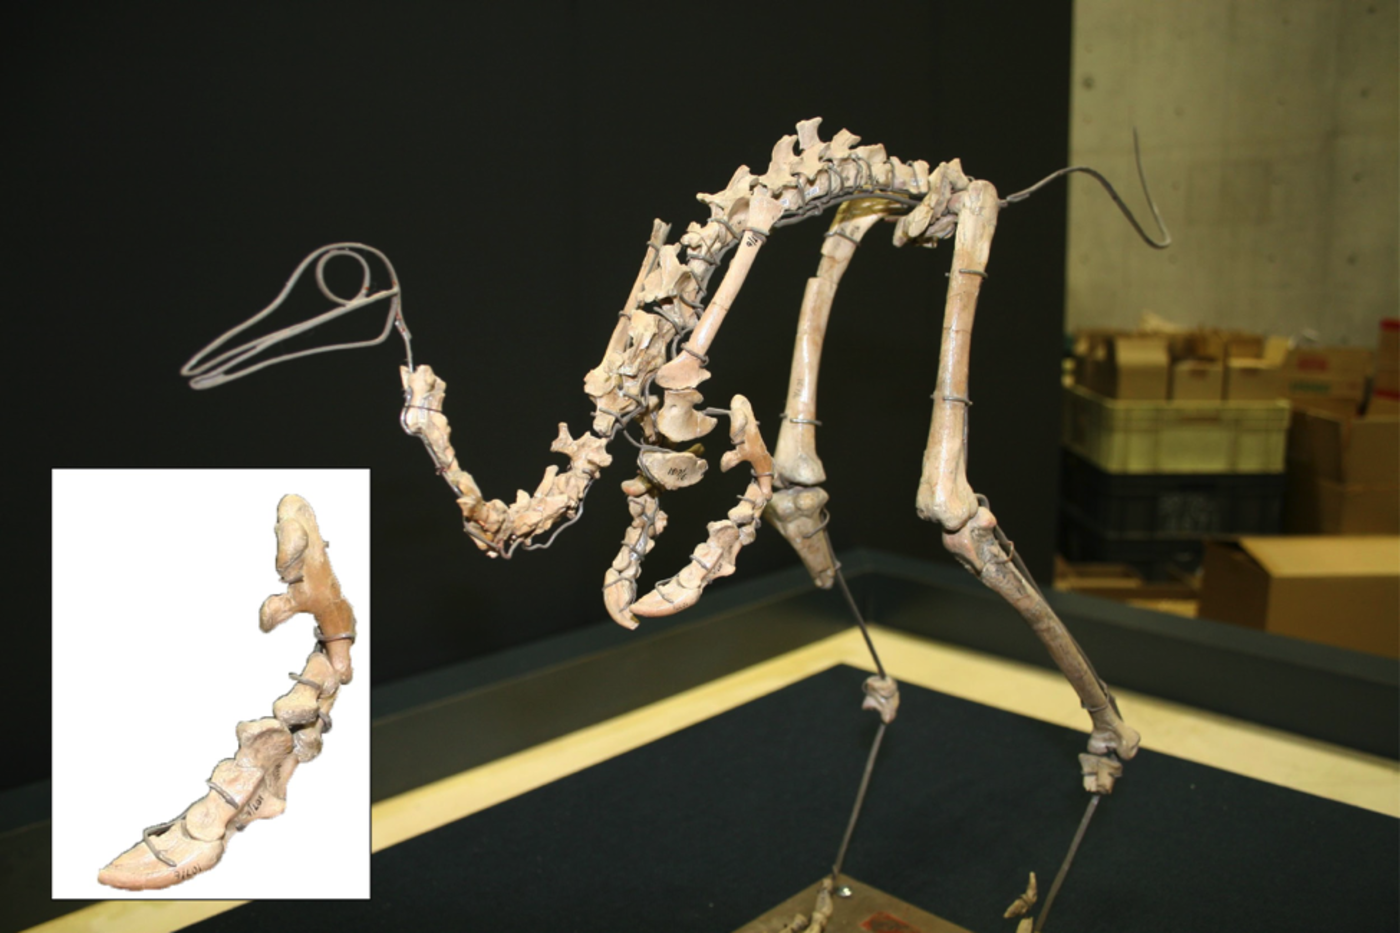 Skeleton of a small bird-like animal, with an inset of its small arm